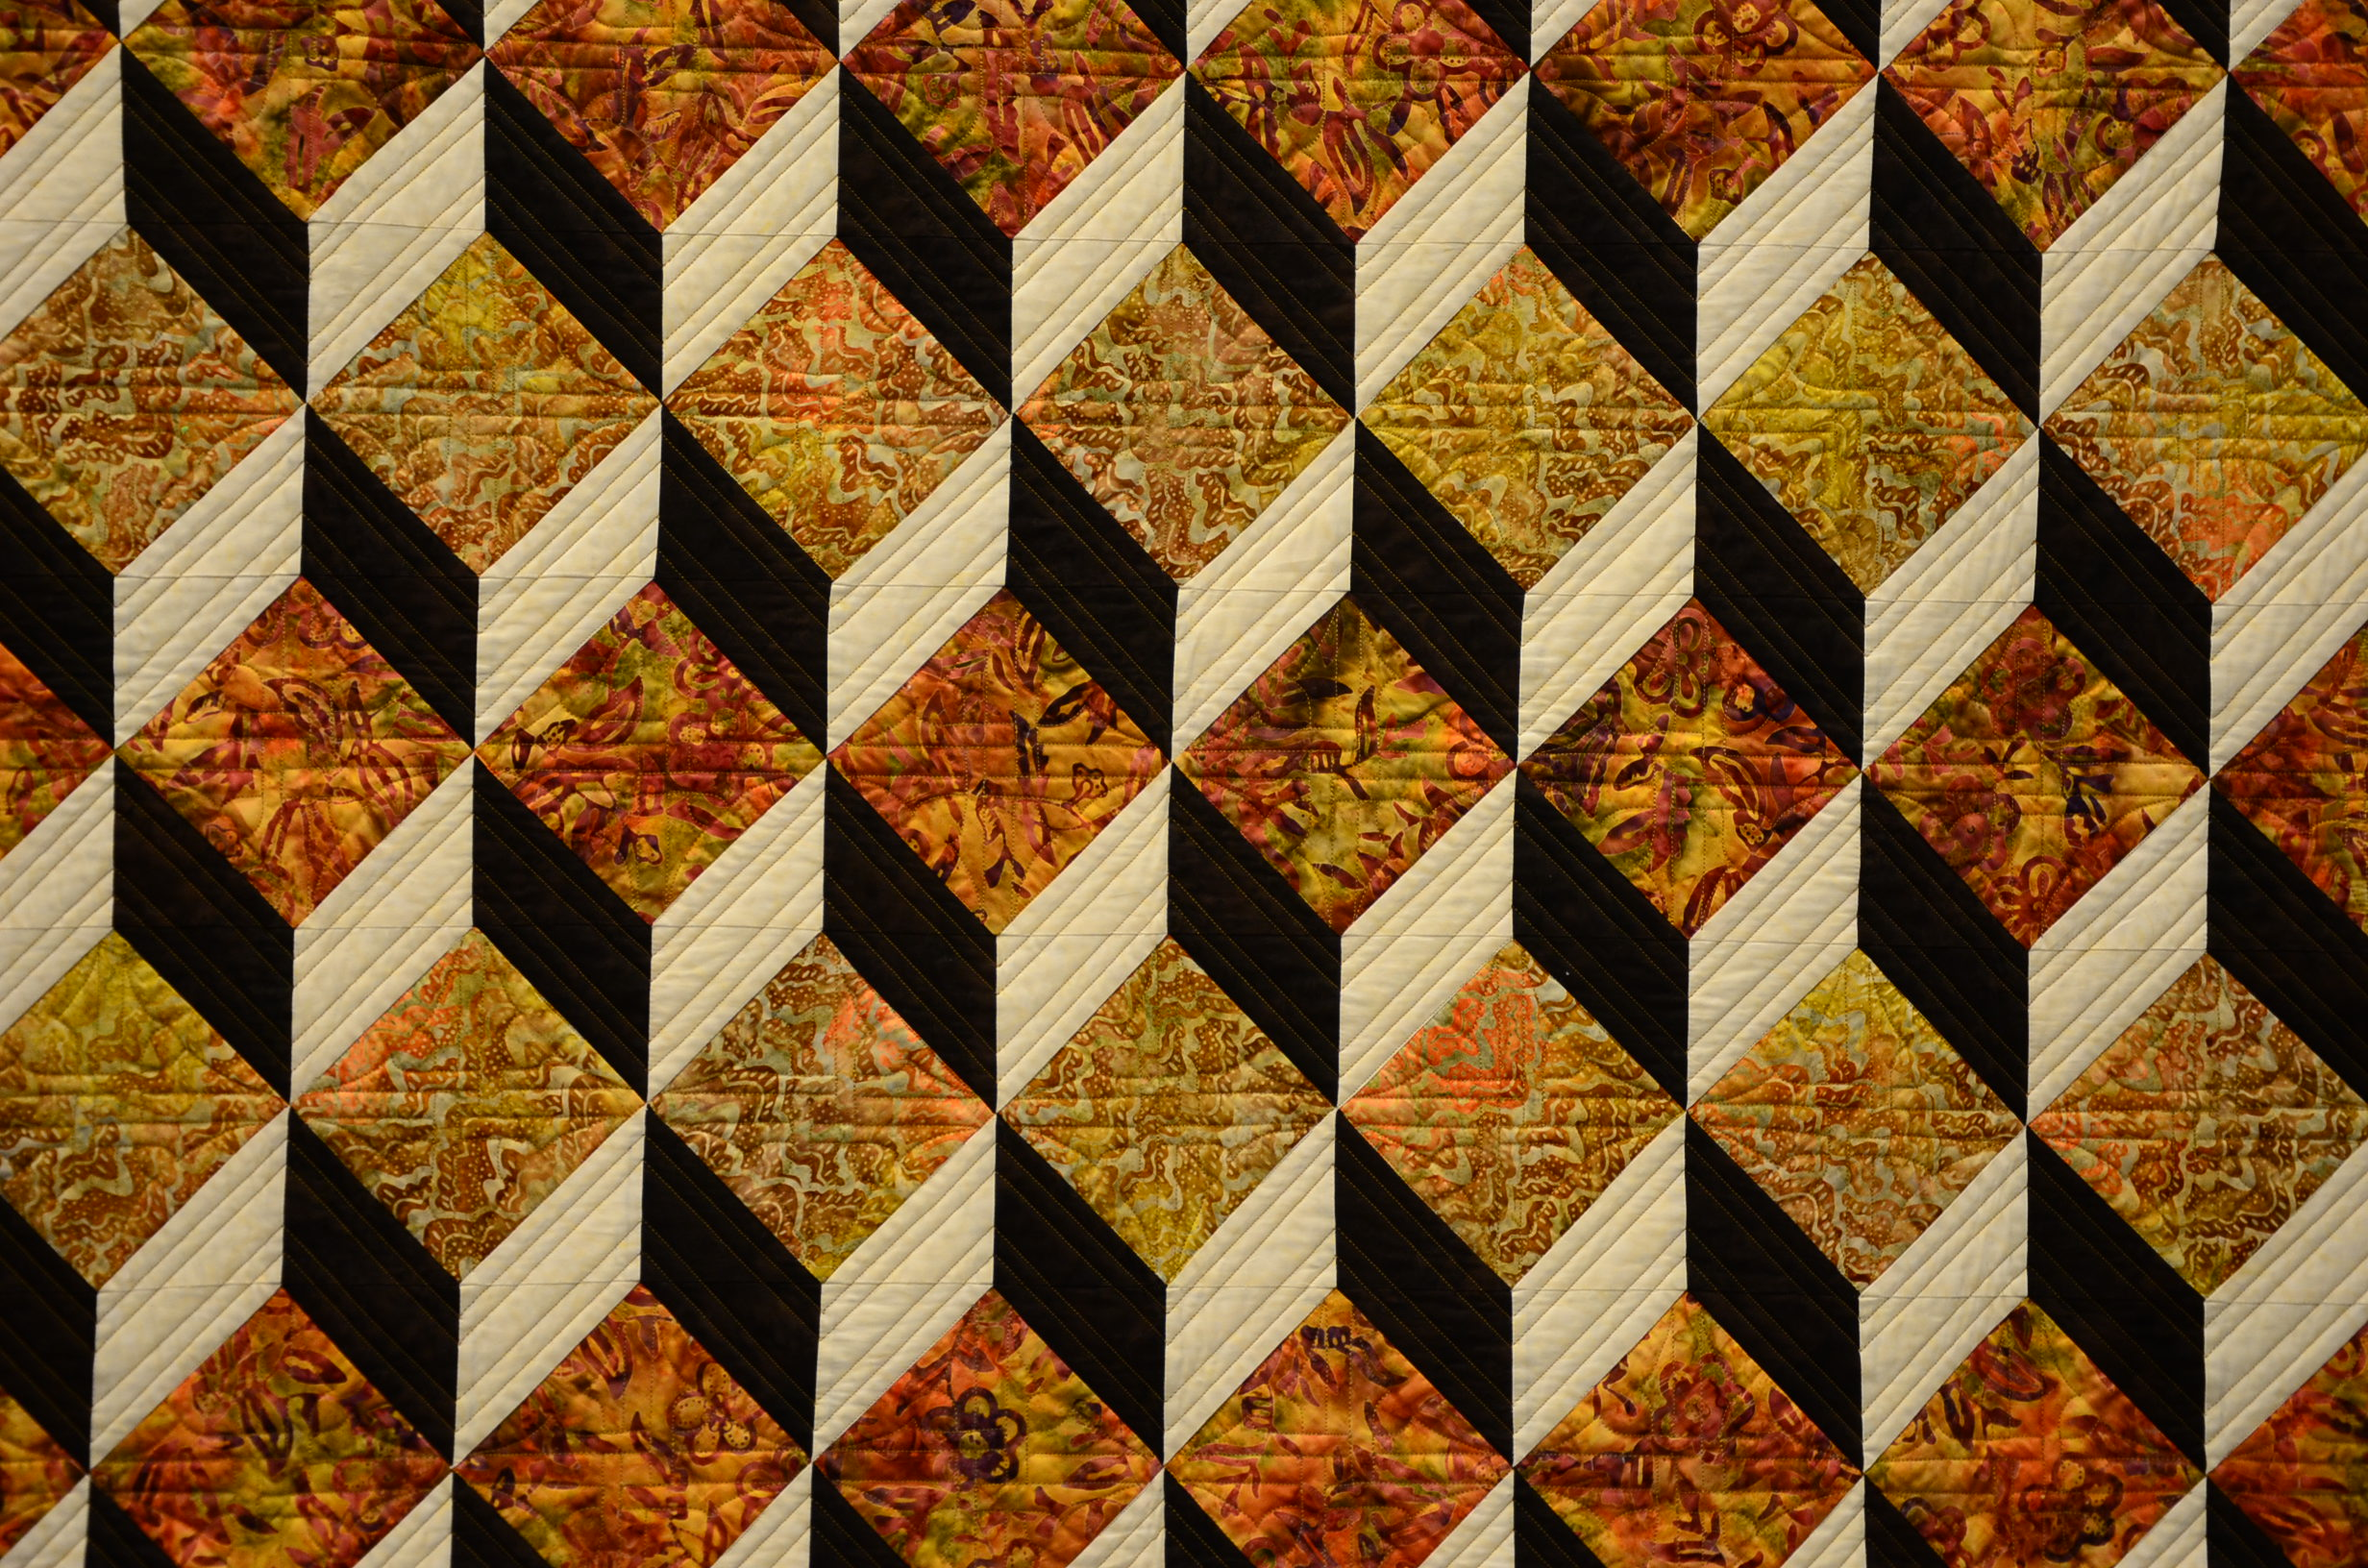 22nd Annual Mountain Quilt Festival in Pigeon Forge, TN